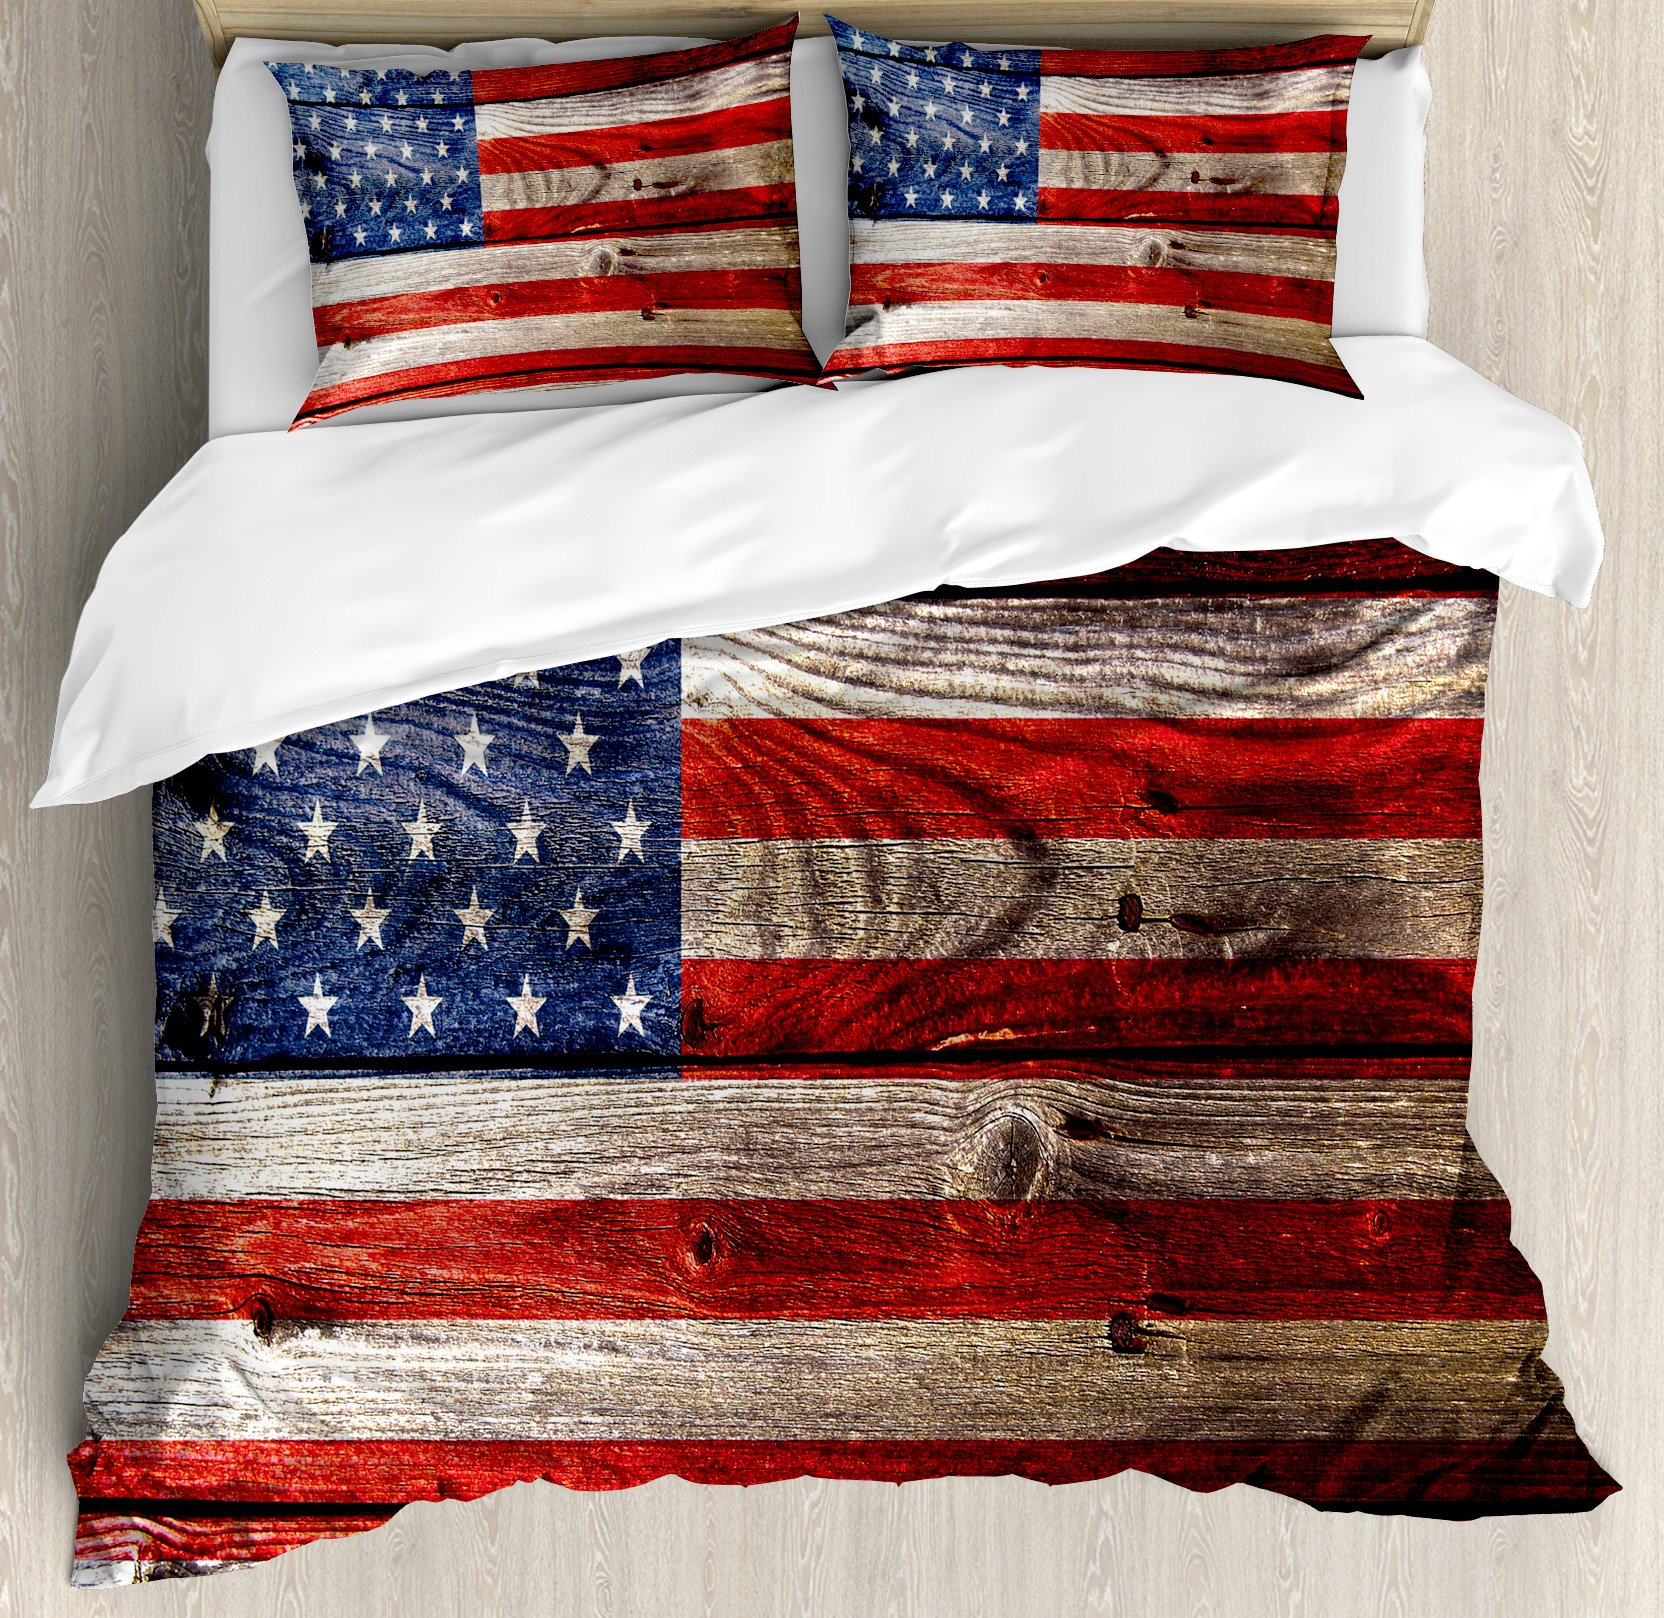 Rustic American USA Flag King Size Duvet Cover Set by Ambesonne, Fourth of July Independence Day Weathered Retro Wood Wall Looking Country Emblem, Decorative 3 Piece Bedding Set with 2 Pillow Shams by Ambesonne